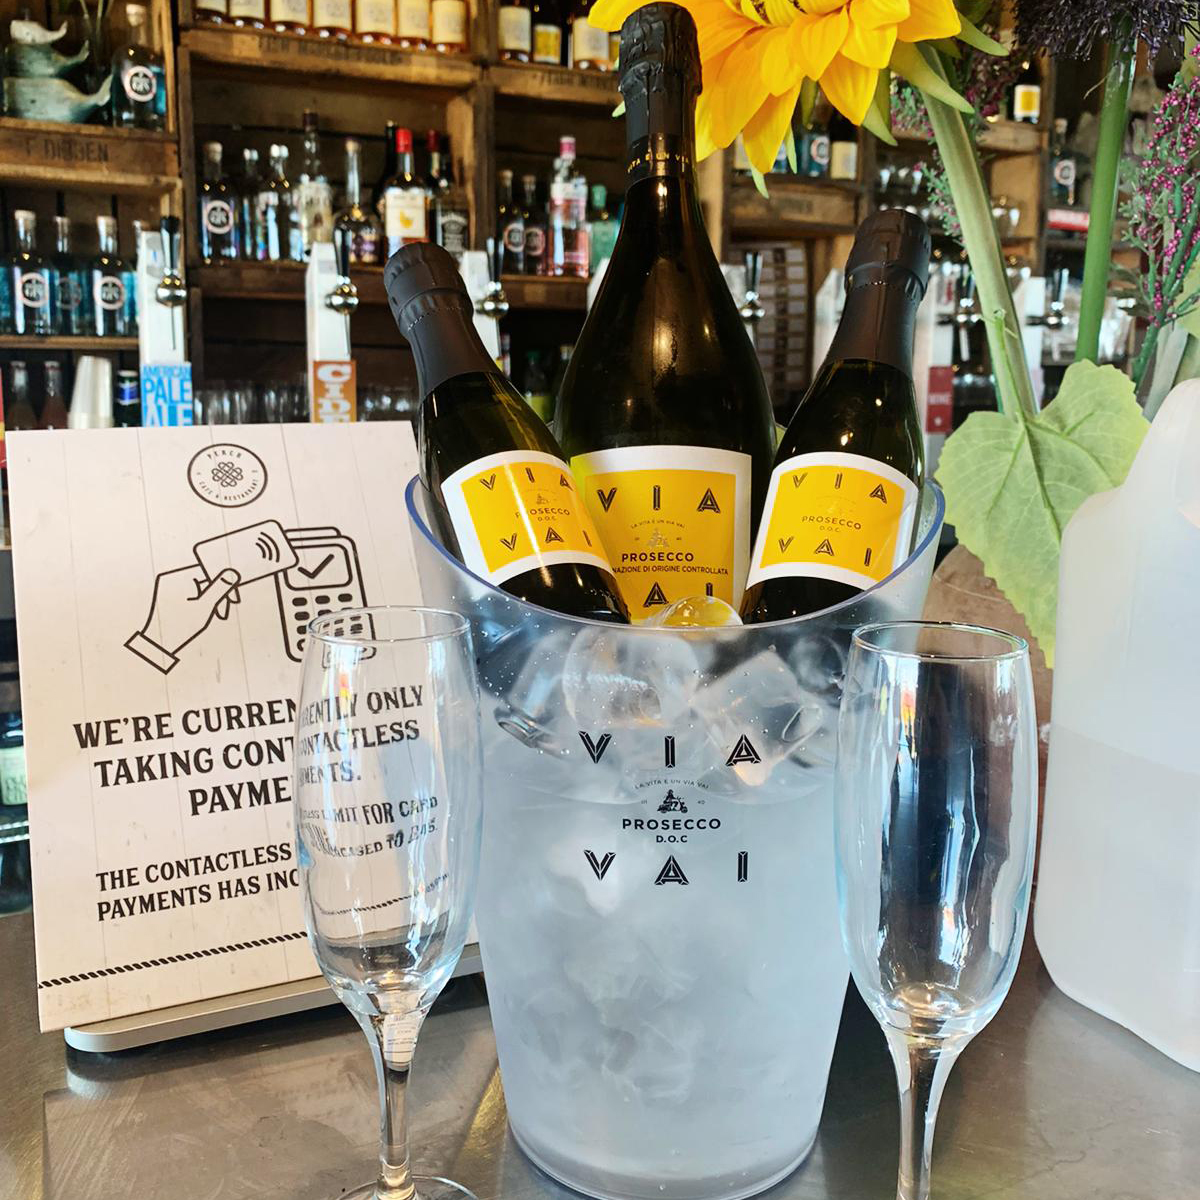 Bottles of Via Vai prosecco in a wine holder with ice and two prosecco glasses